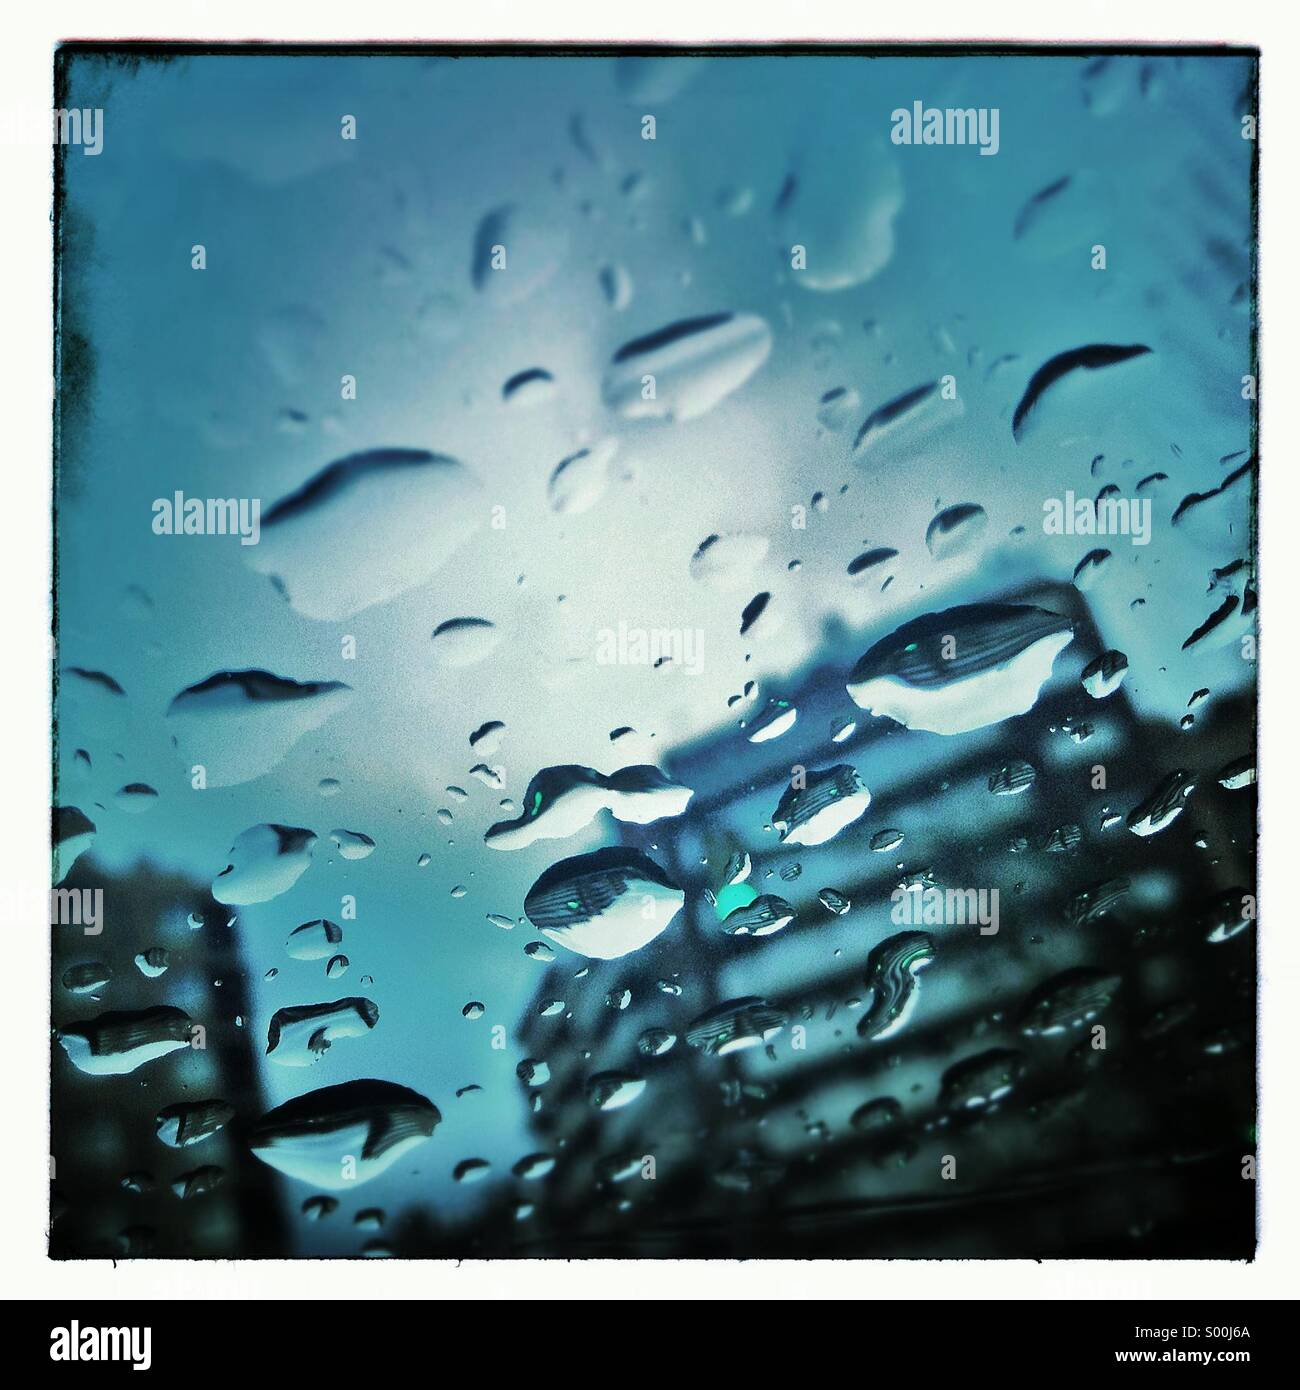 Drops of water on a car glass. Faces in objects.Stock Photo